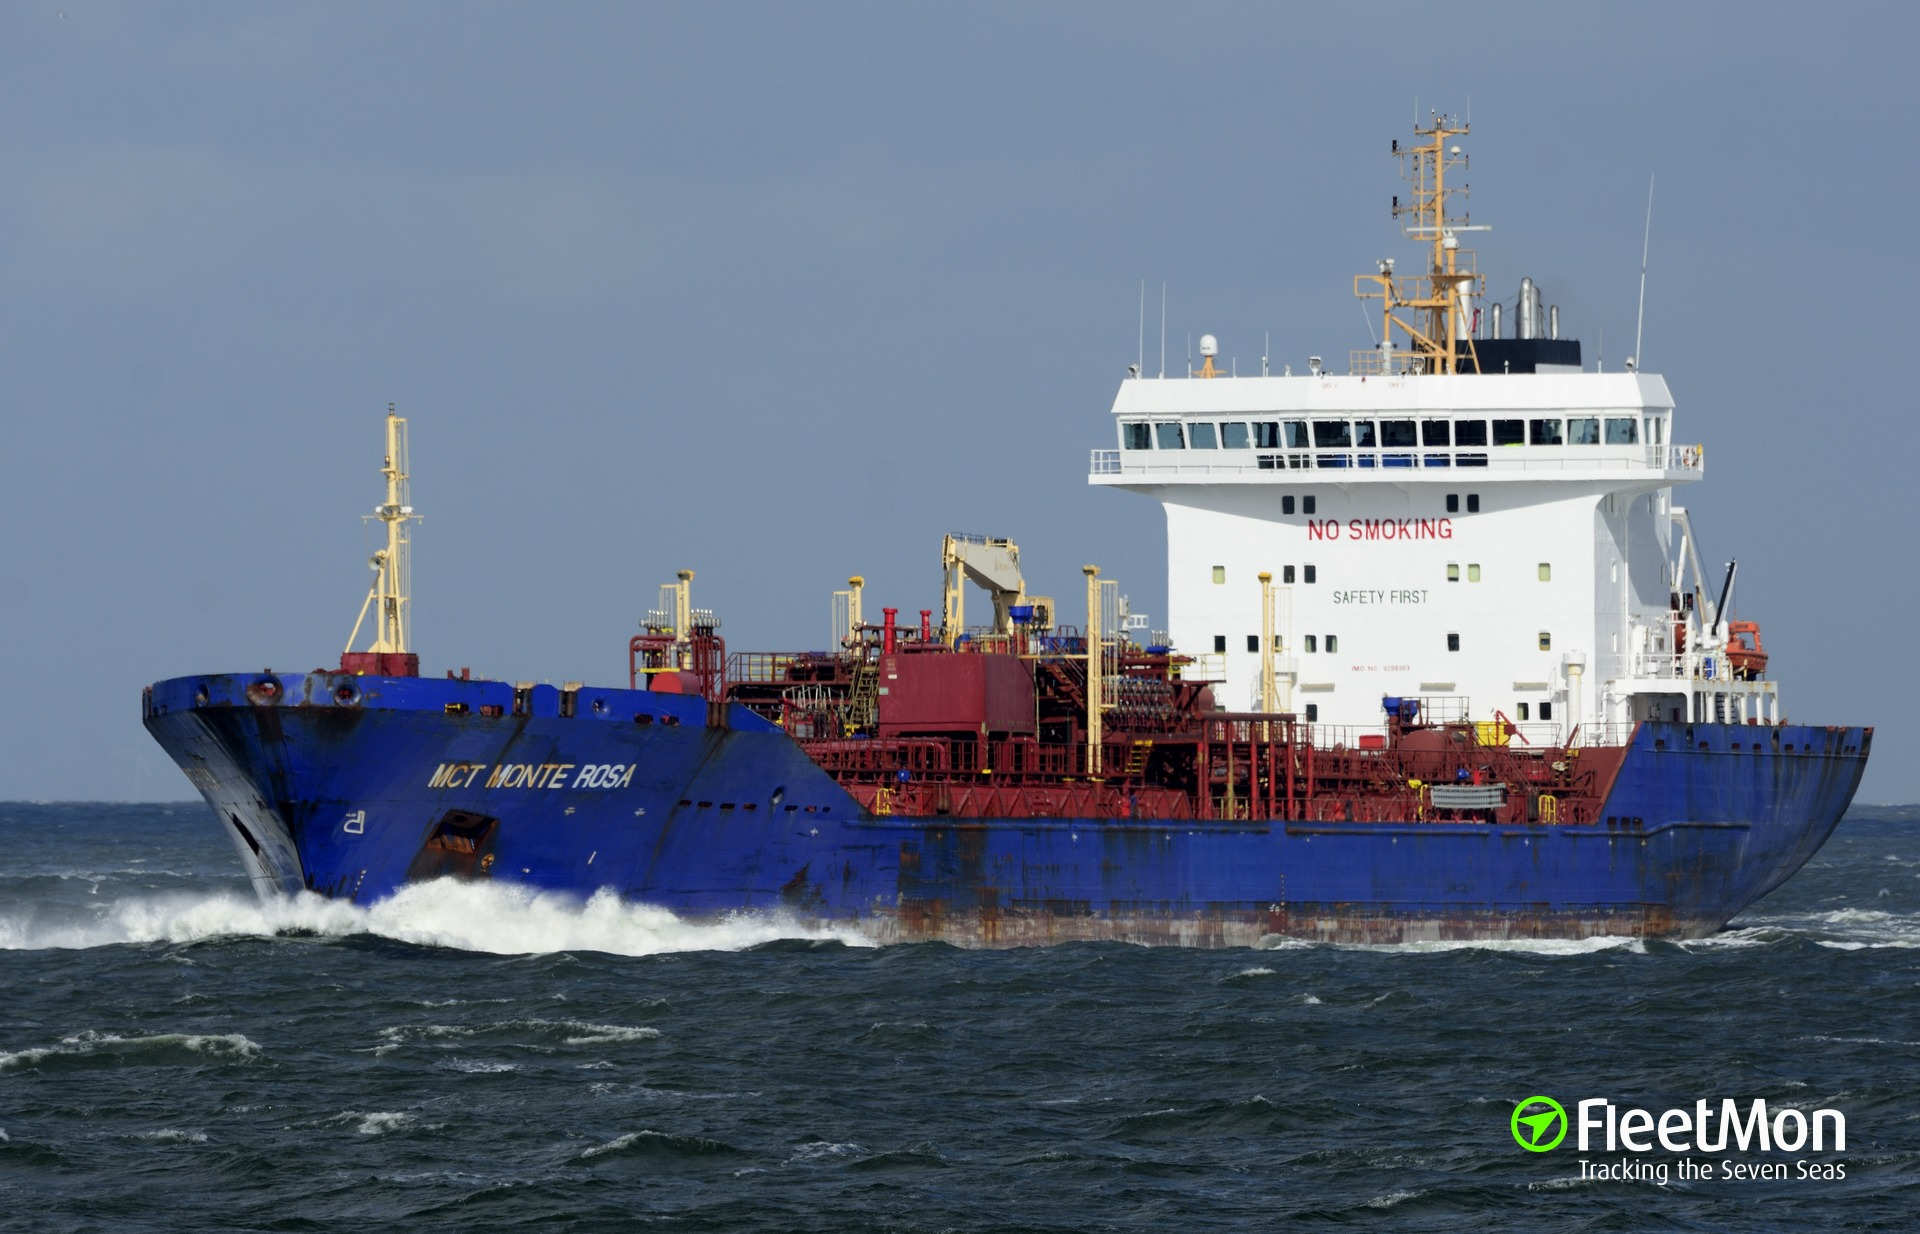 SCT MONTE ROSA troubled in Great Lakes